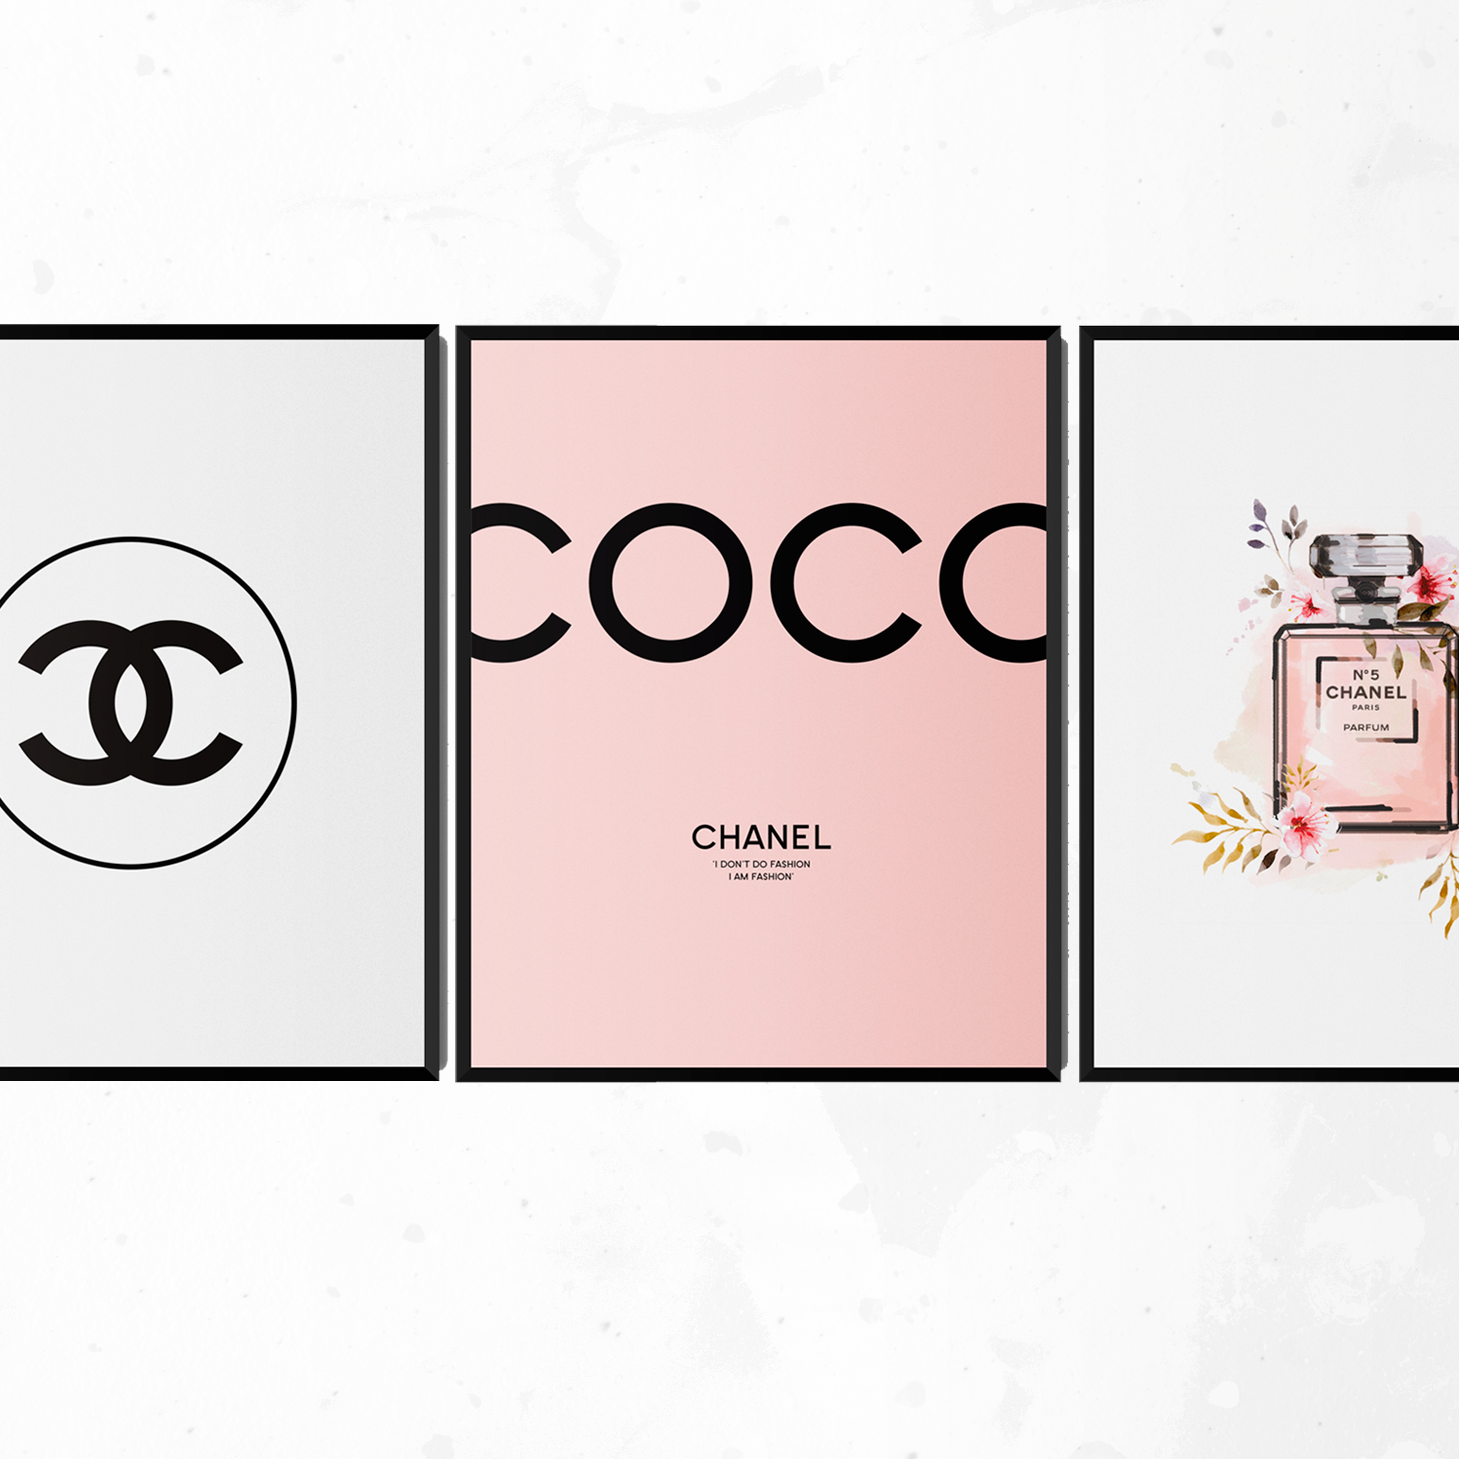 My New Chanel Wall Art Collection Is Here Remem This Yummy Vouge Fashion Just Sold On Wrhel Com Want To Know Chanel Wall Art Wall Art Gift Chanel Print